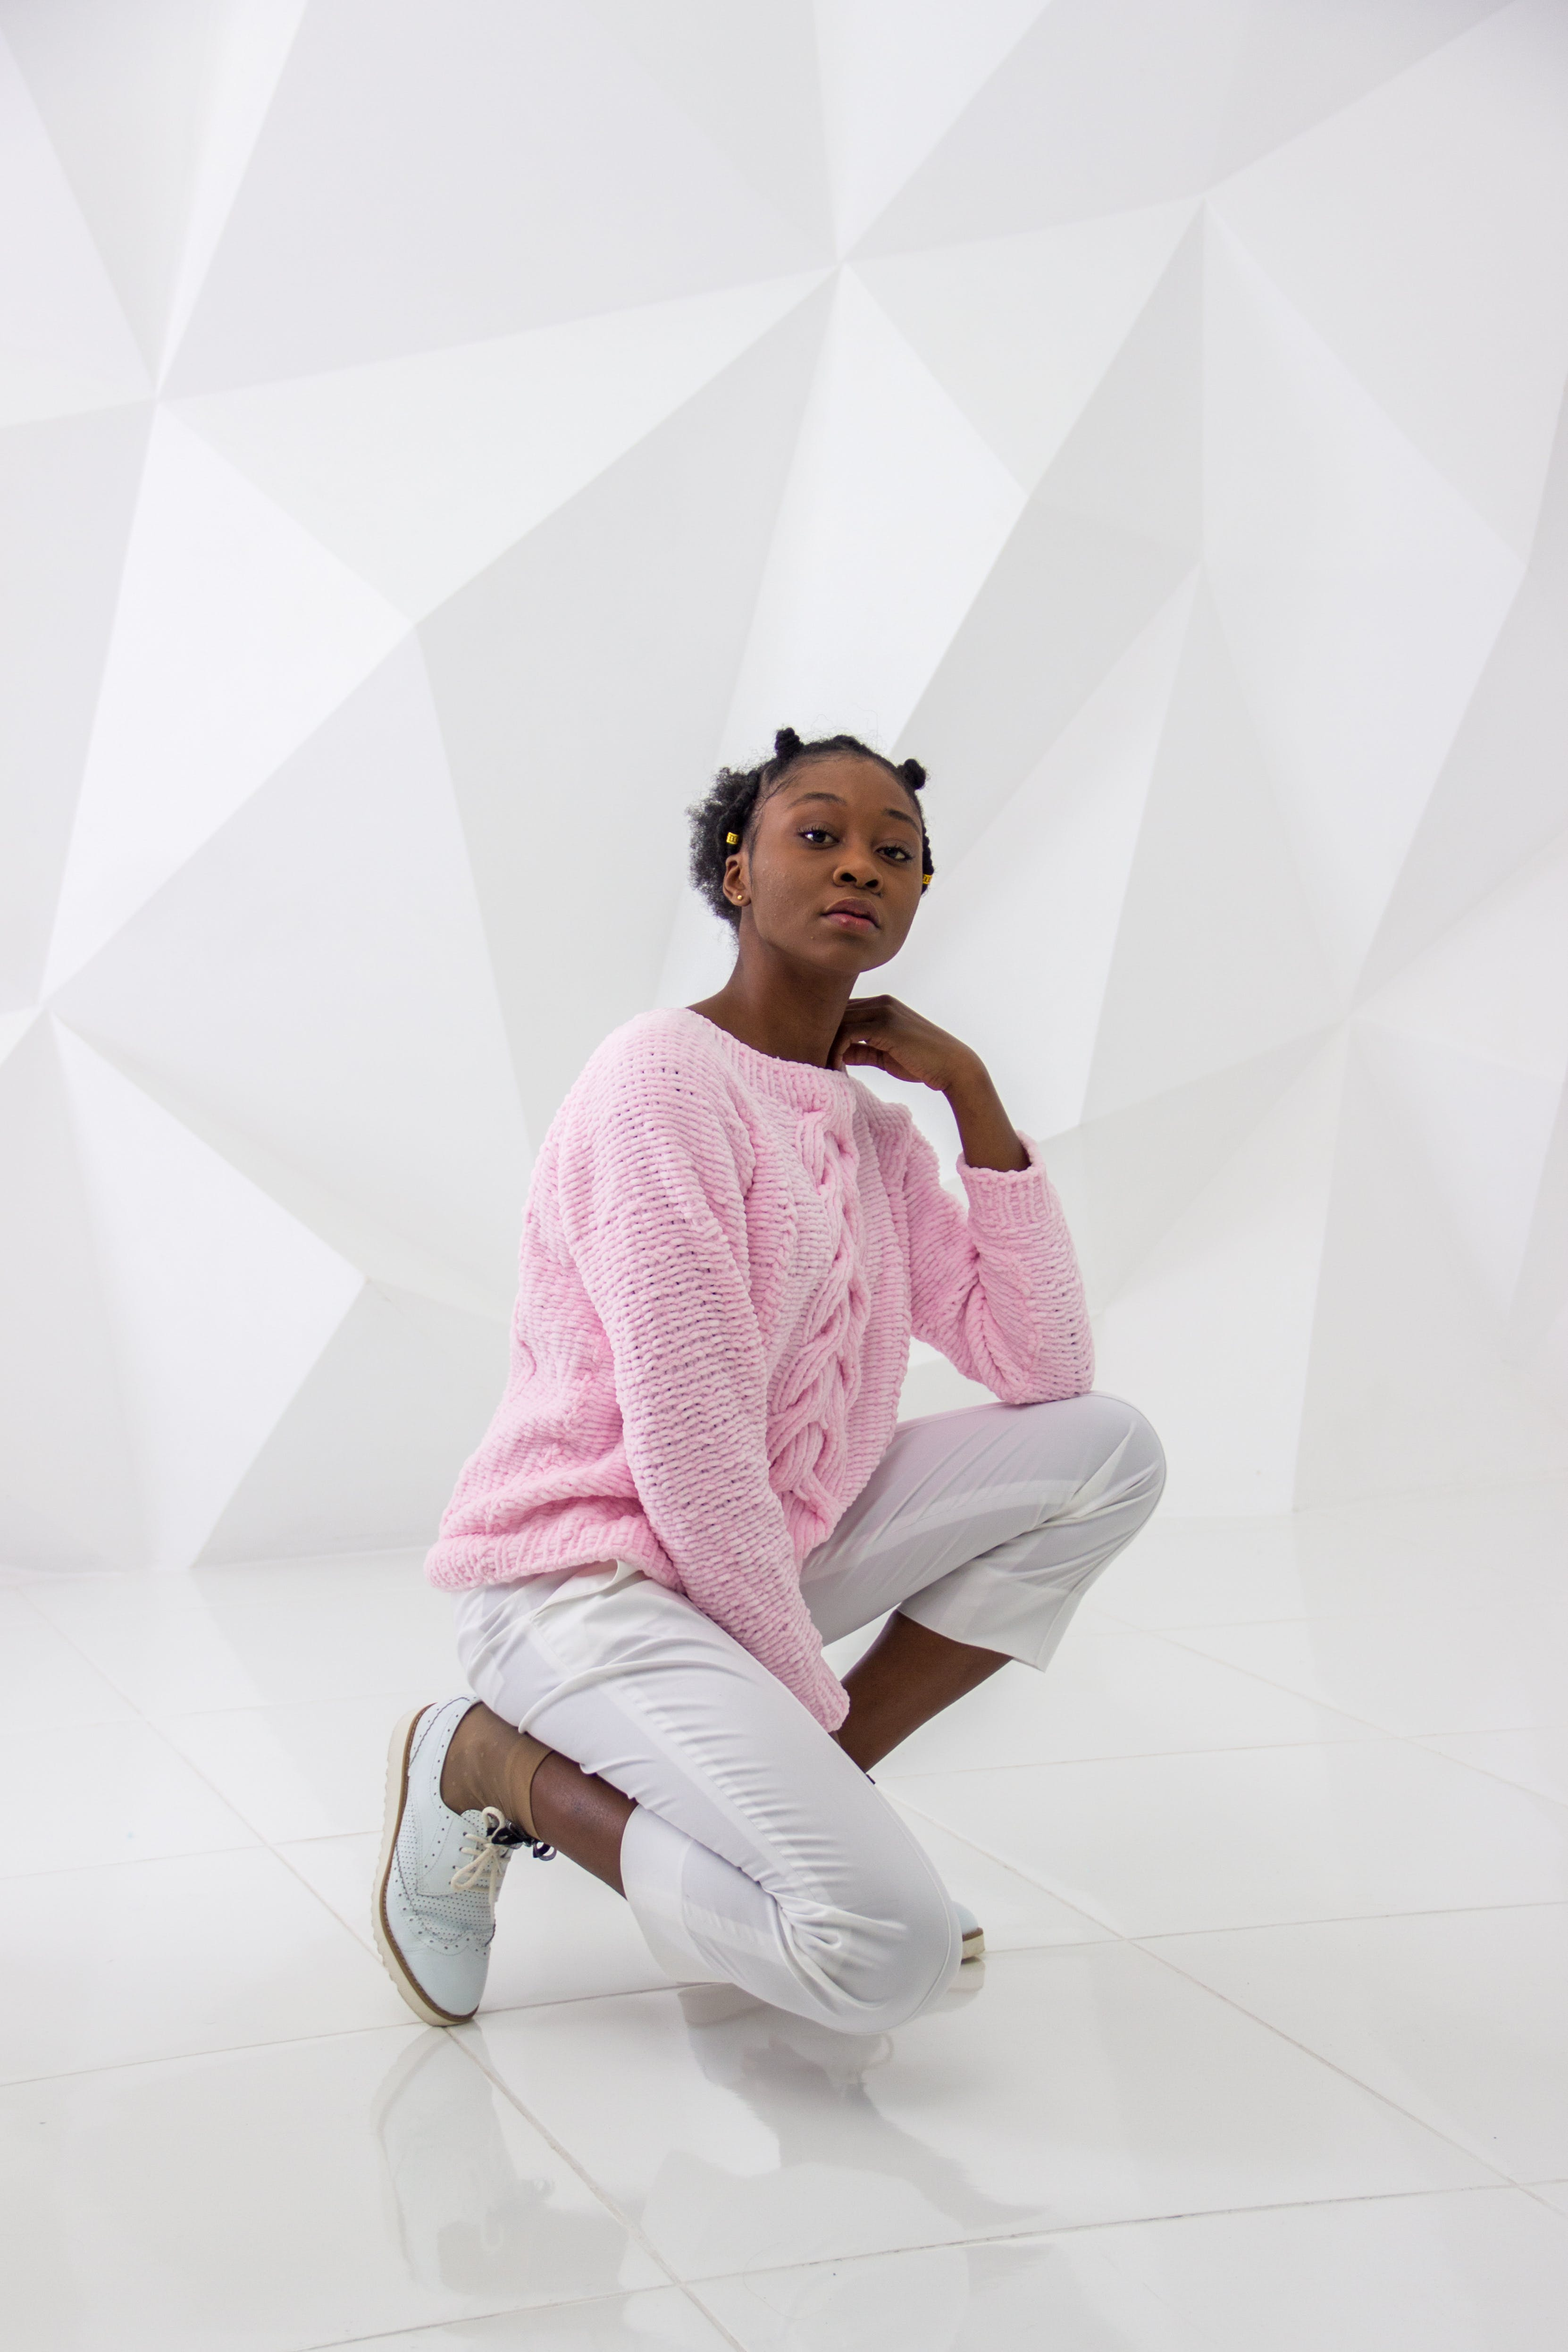 Woman Wearing Pink Sweater and White Pants Posing